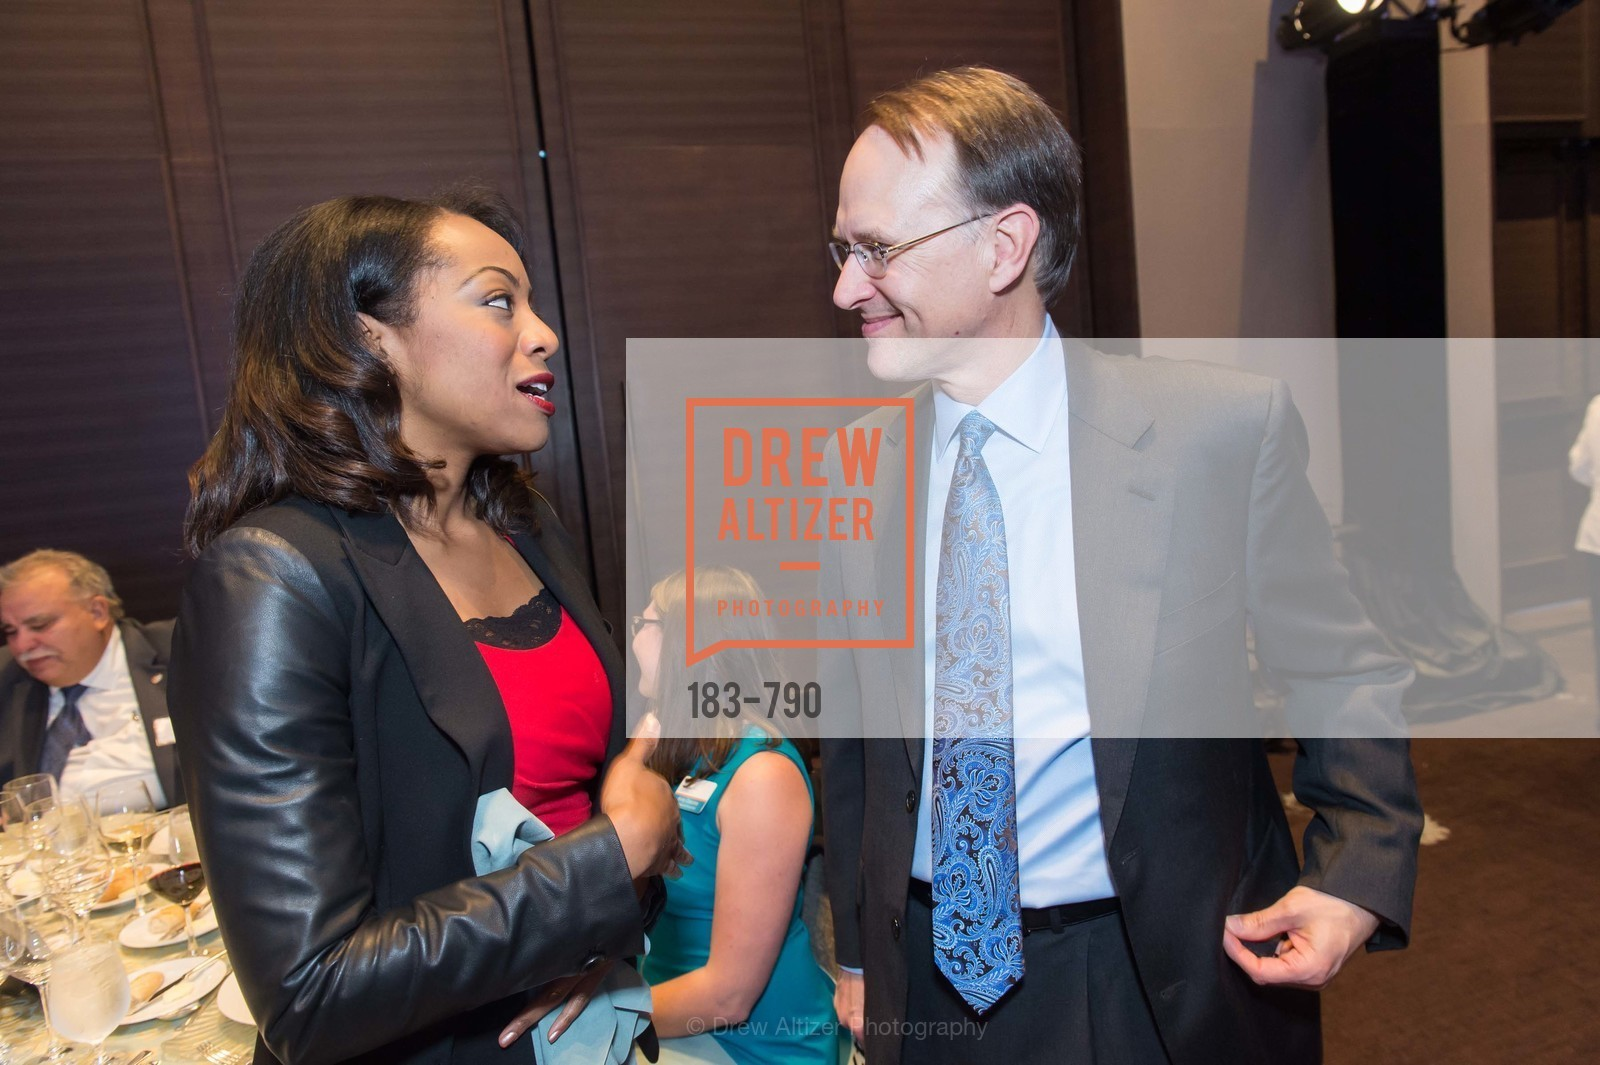 Malia Cohen, Jeff Bialik, Post War and Contemporary Preview at HEDGE GALLERY, US, April 16th, 2015,Drew Altizer, Drew Altizer Photography, full-service agency, private events, San Francisco photographer, photographer california